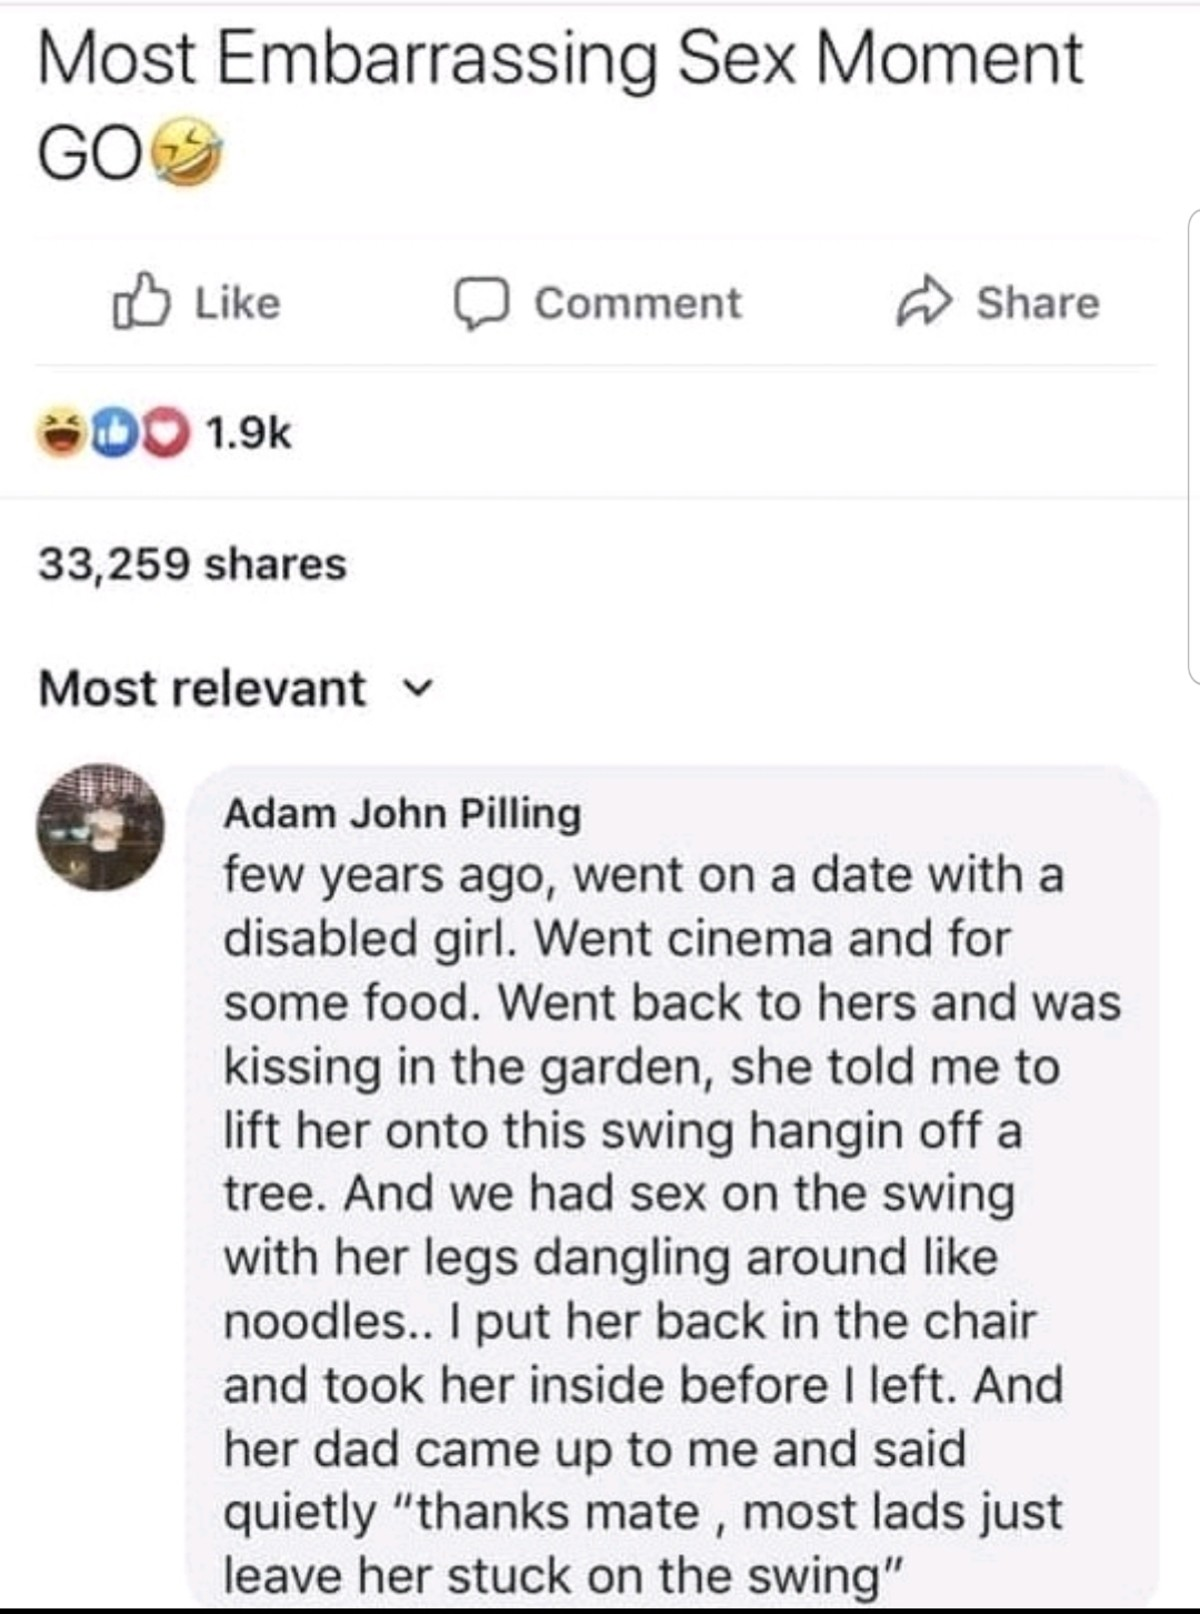 Noodles. .. Fun fact women who are para or quadriplegic can still experience normal orgasms unlike men in the same situation. This is because the female orgasm stems from t